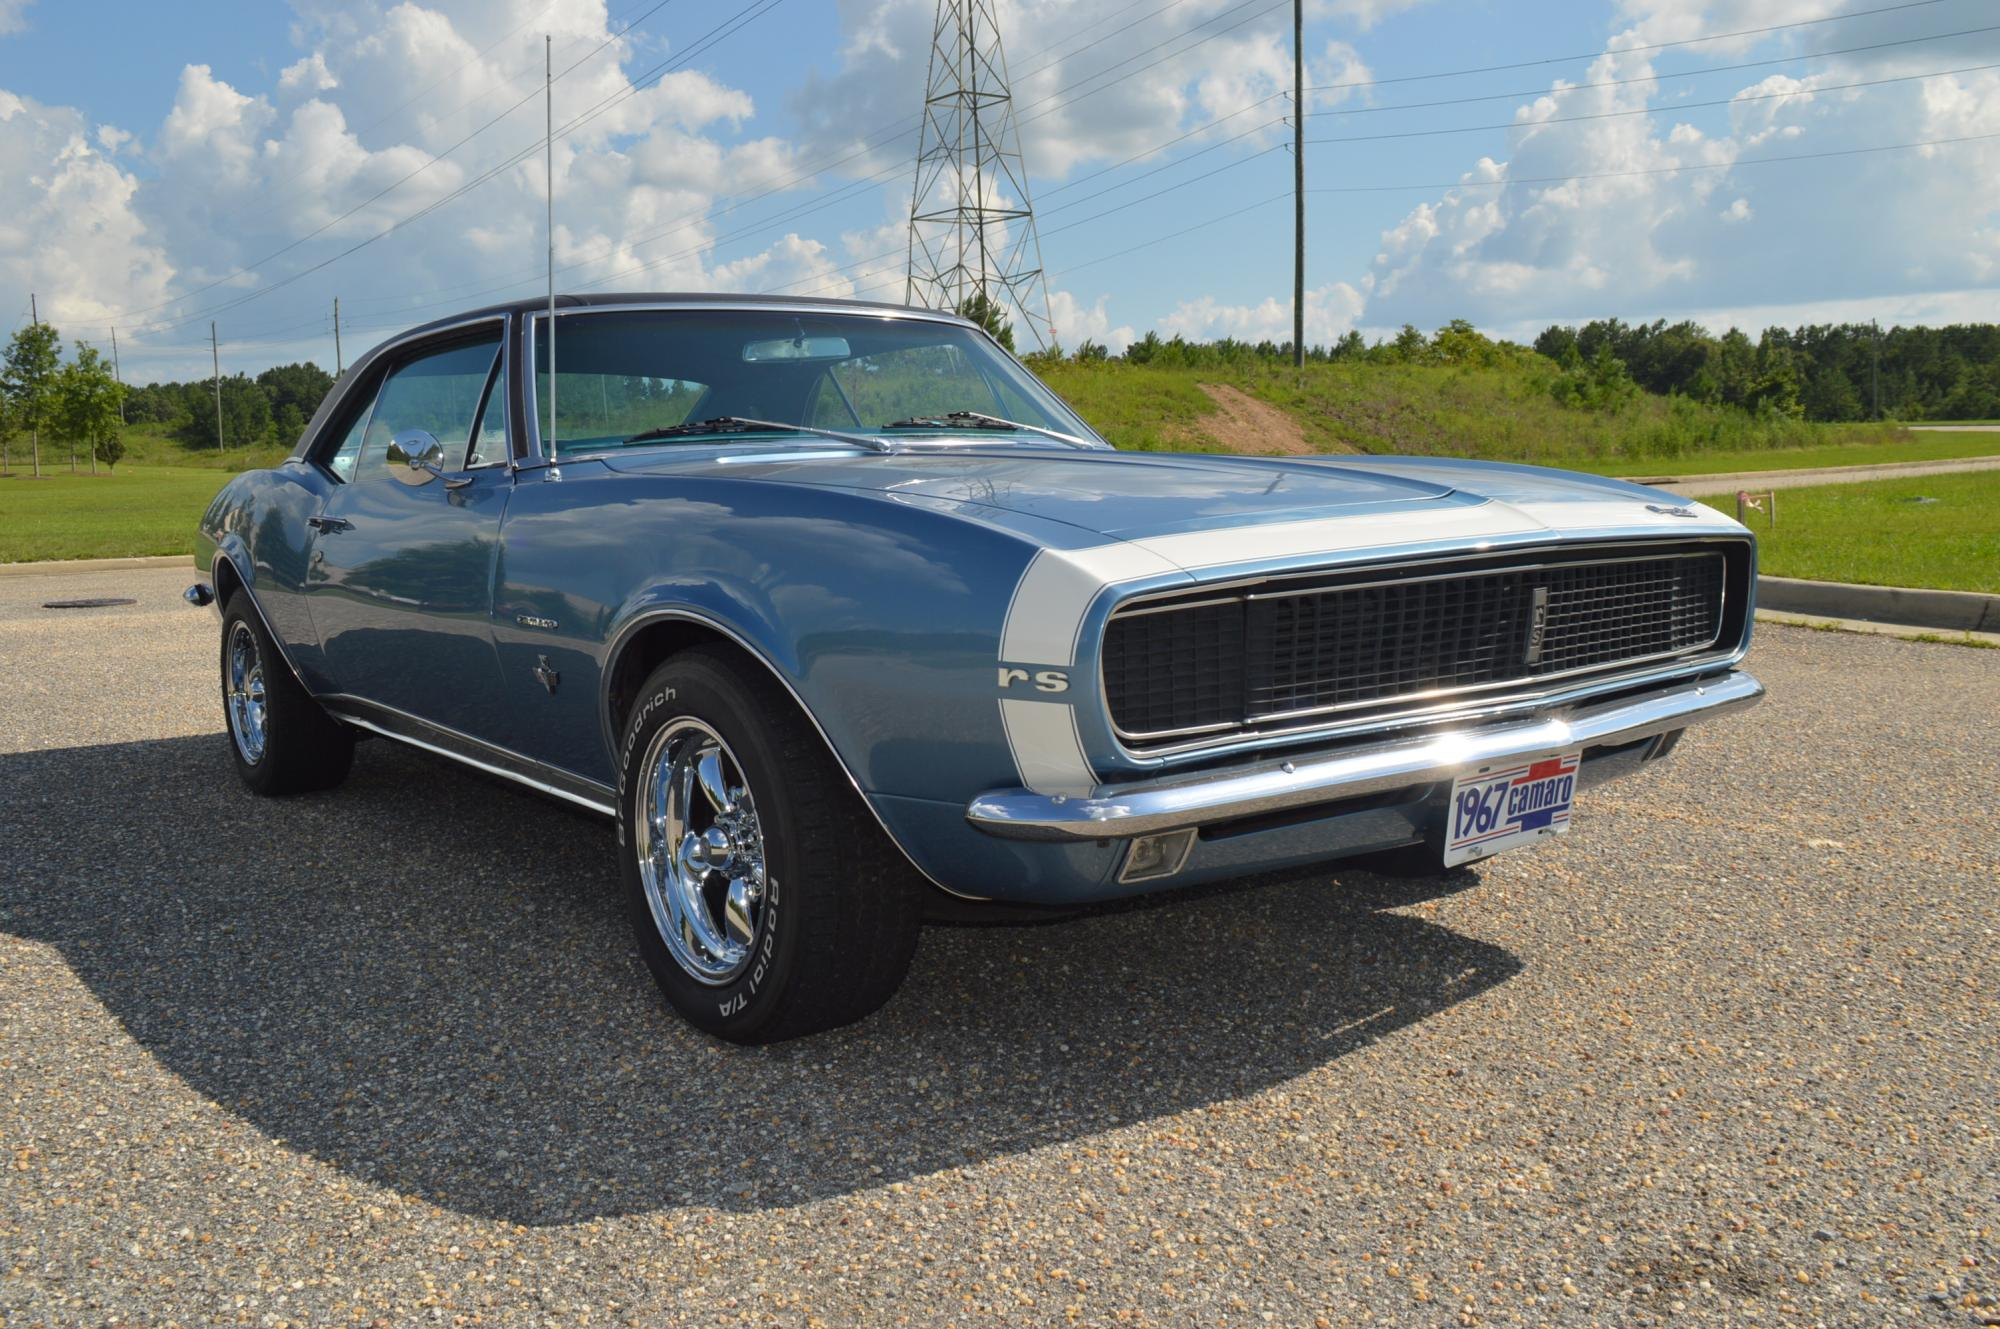 1967_Rs_blue_Camaro_001.JPG